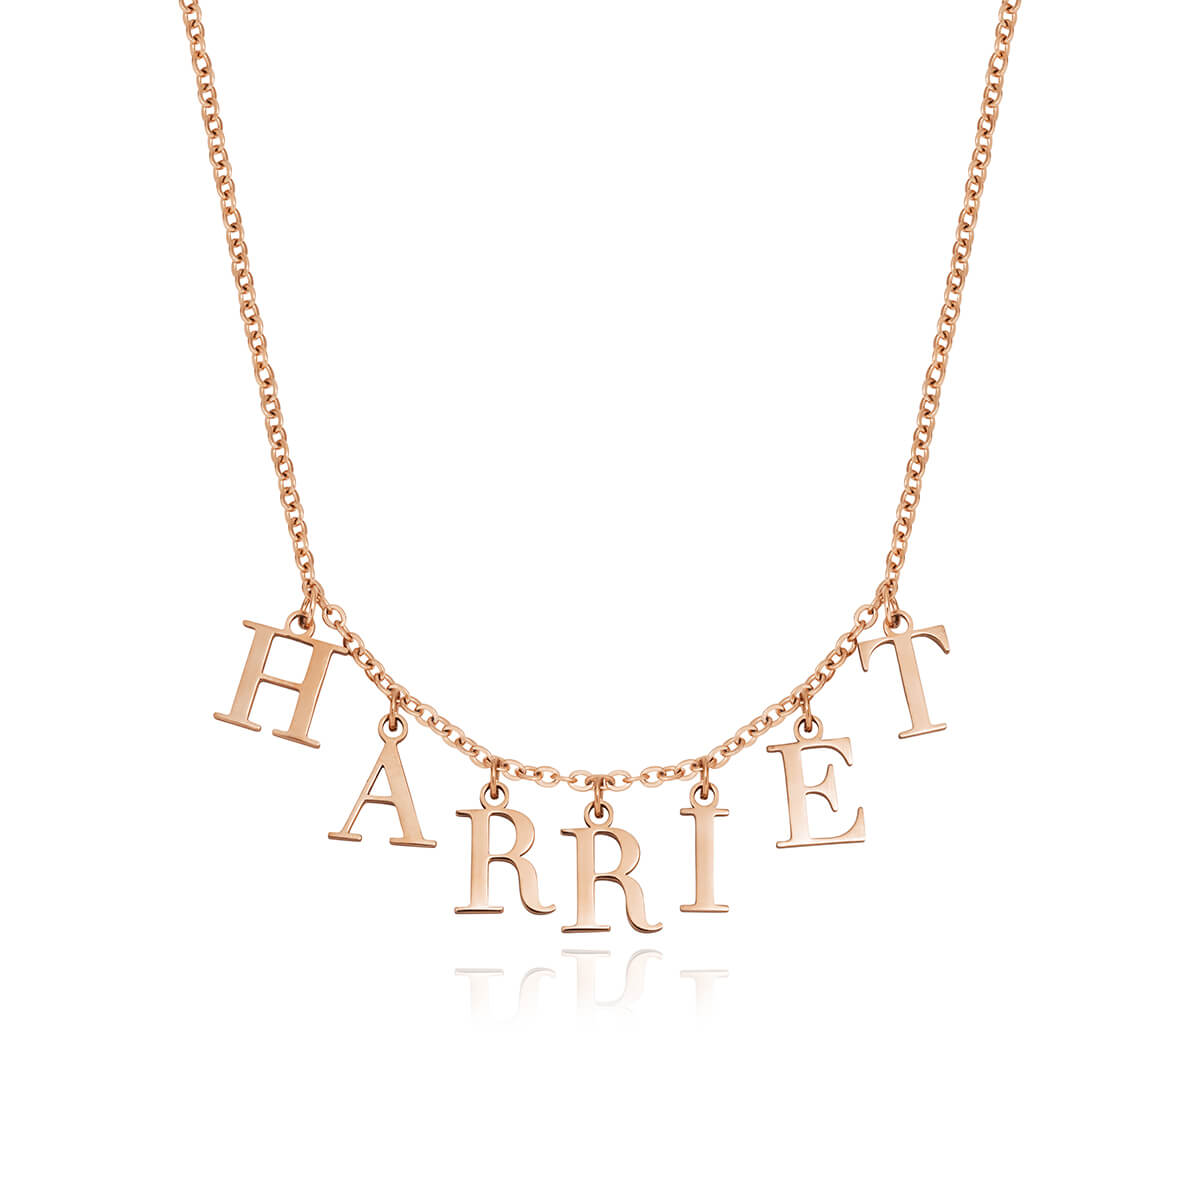 Editorial Letter Name Necklace (Rose Gold)